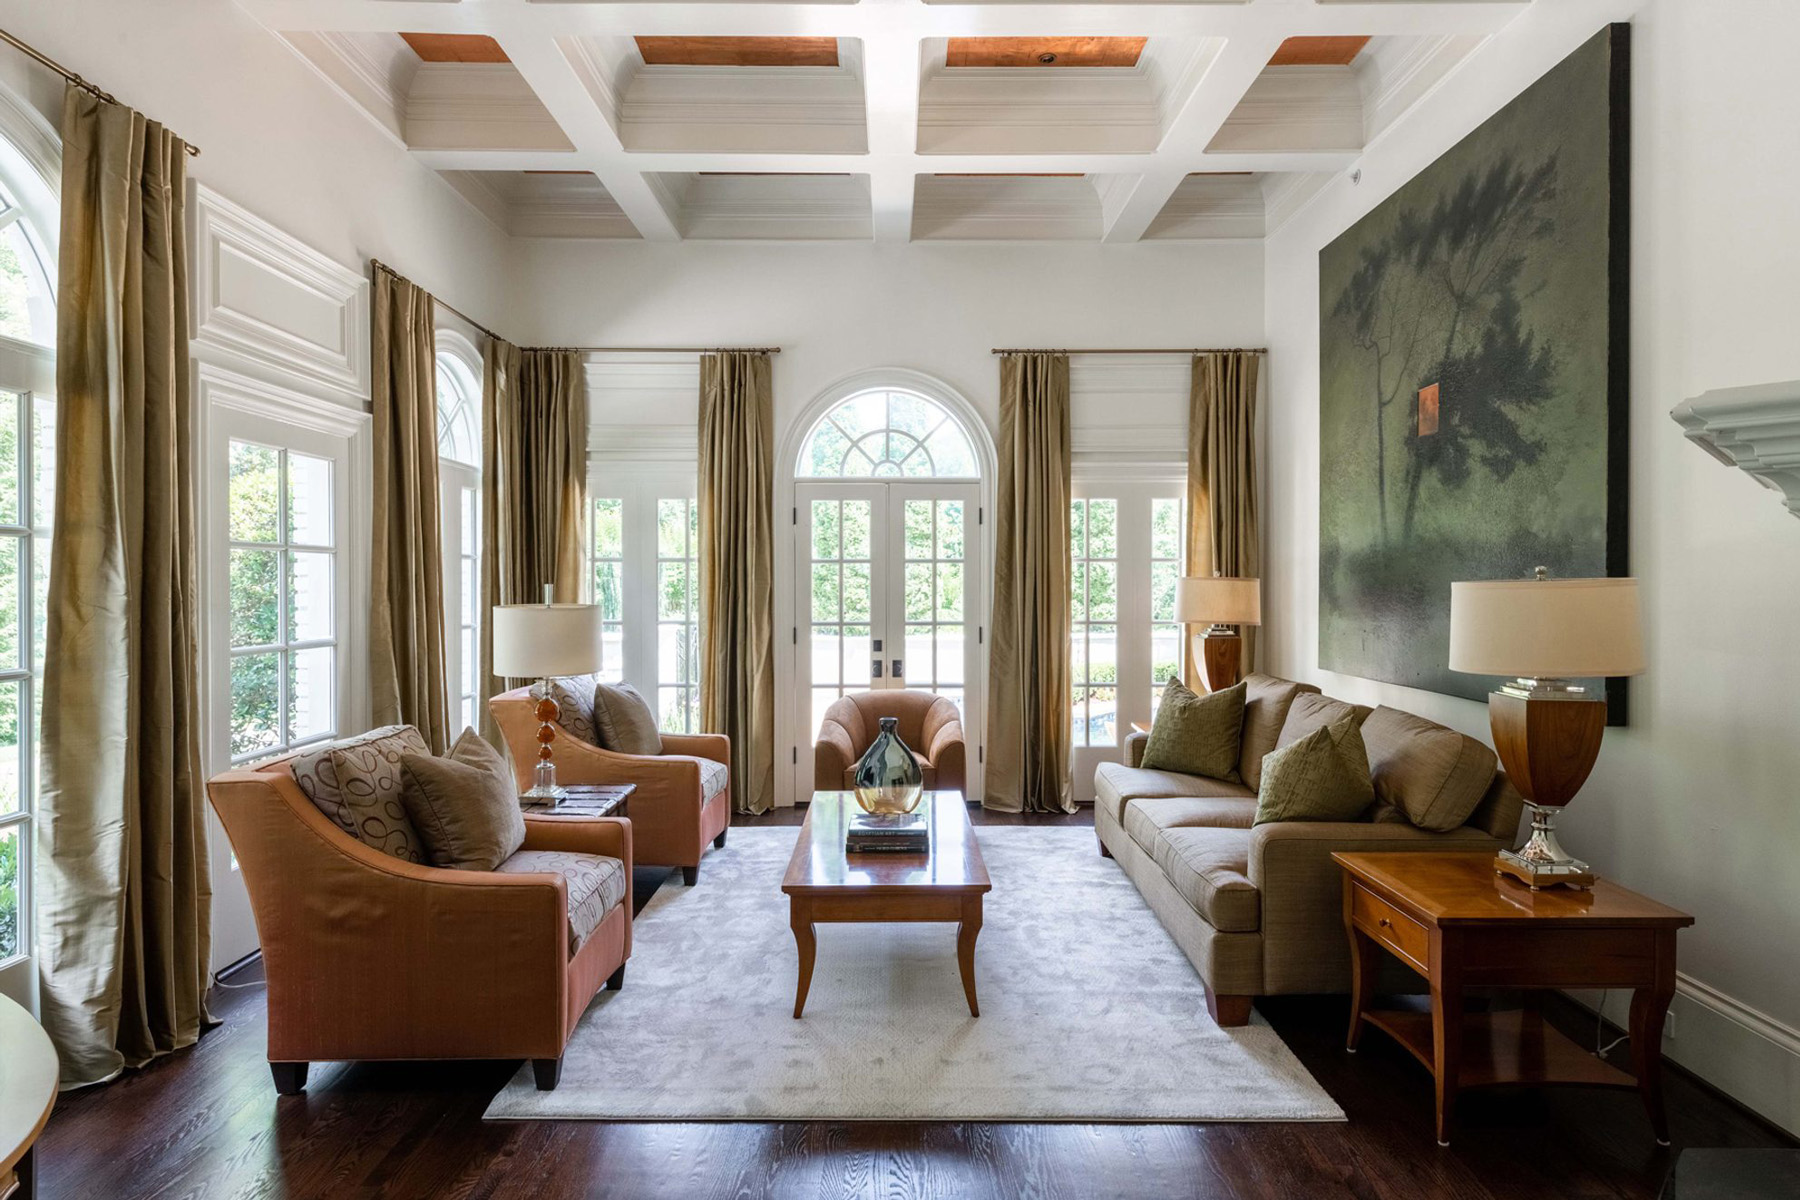 shop the look beautifulliving room with gold drapes, orange brown chairs, wood furniture